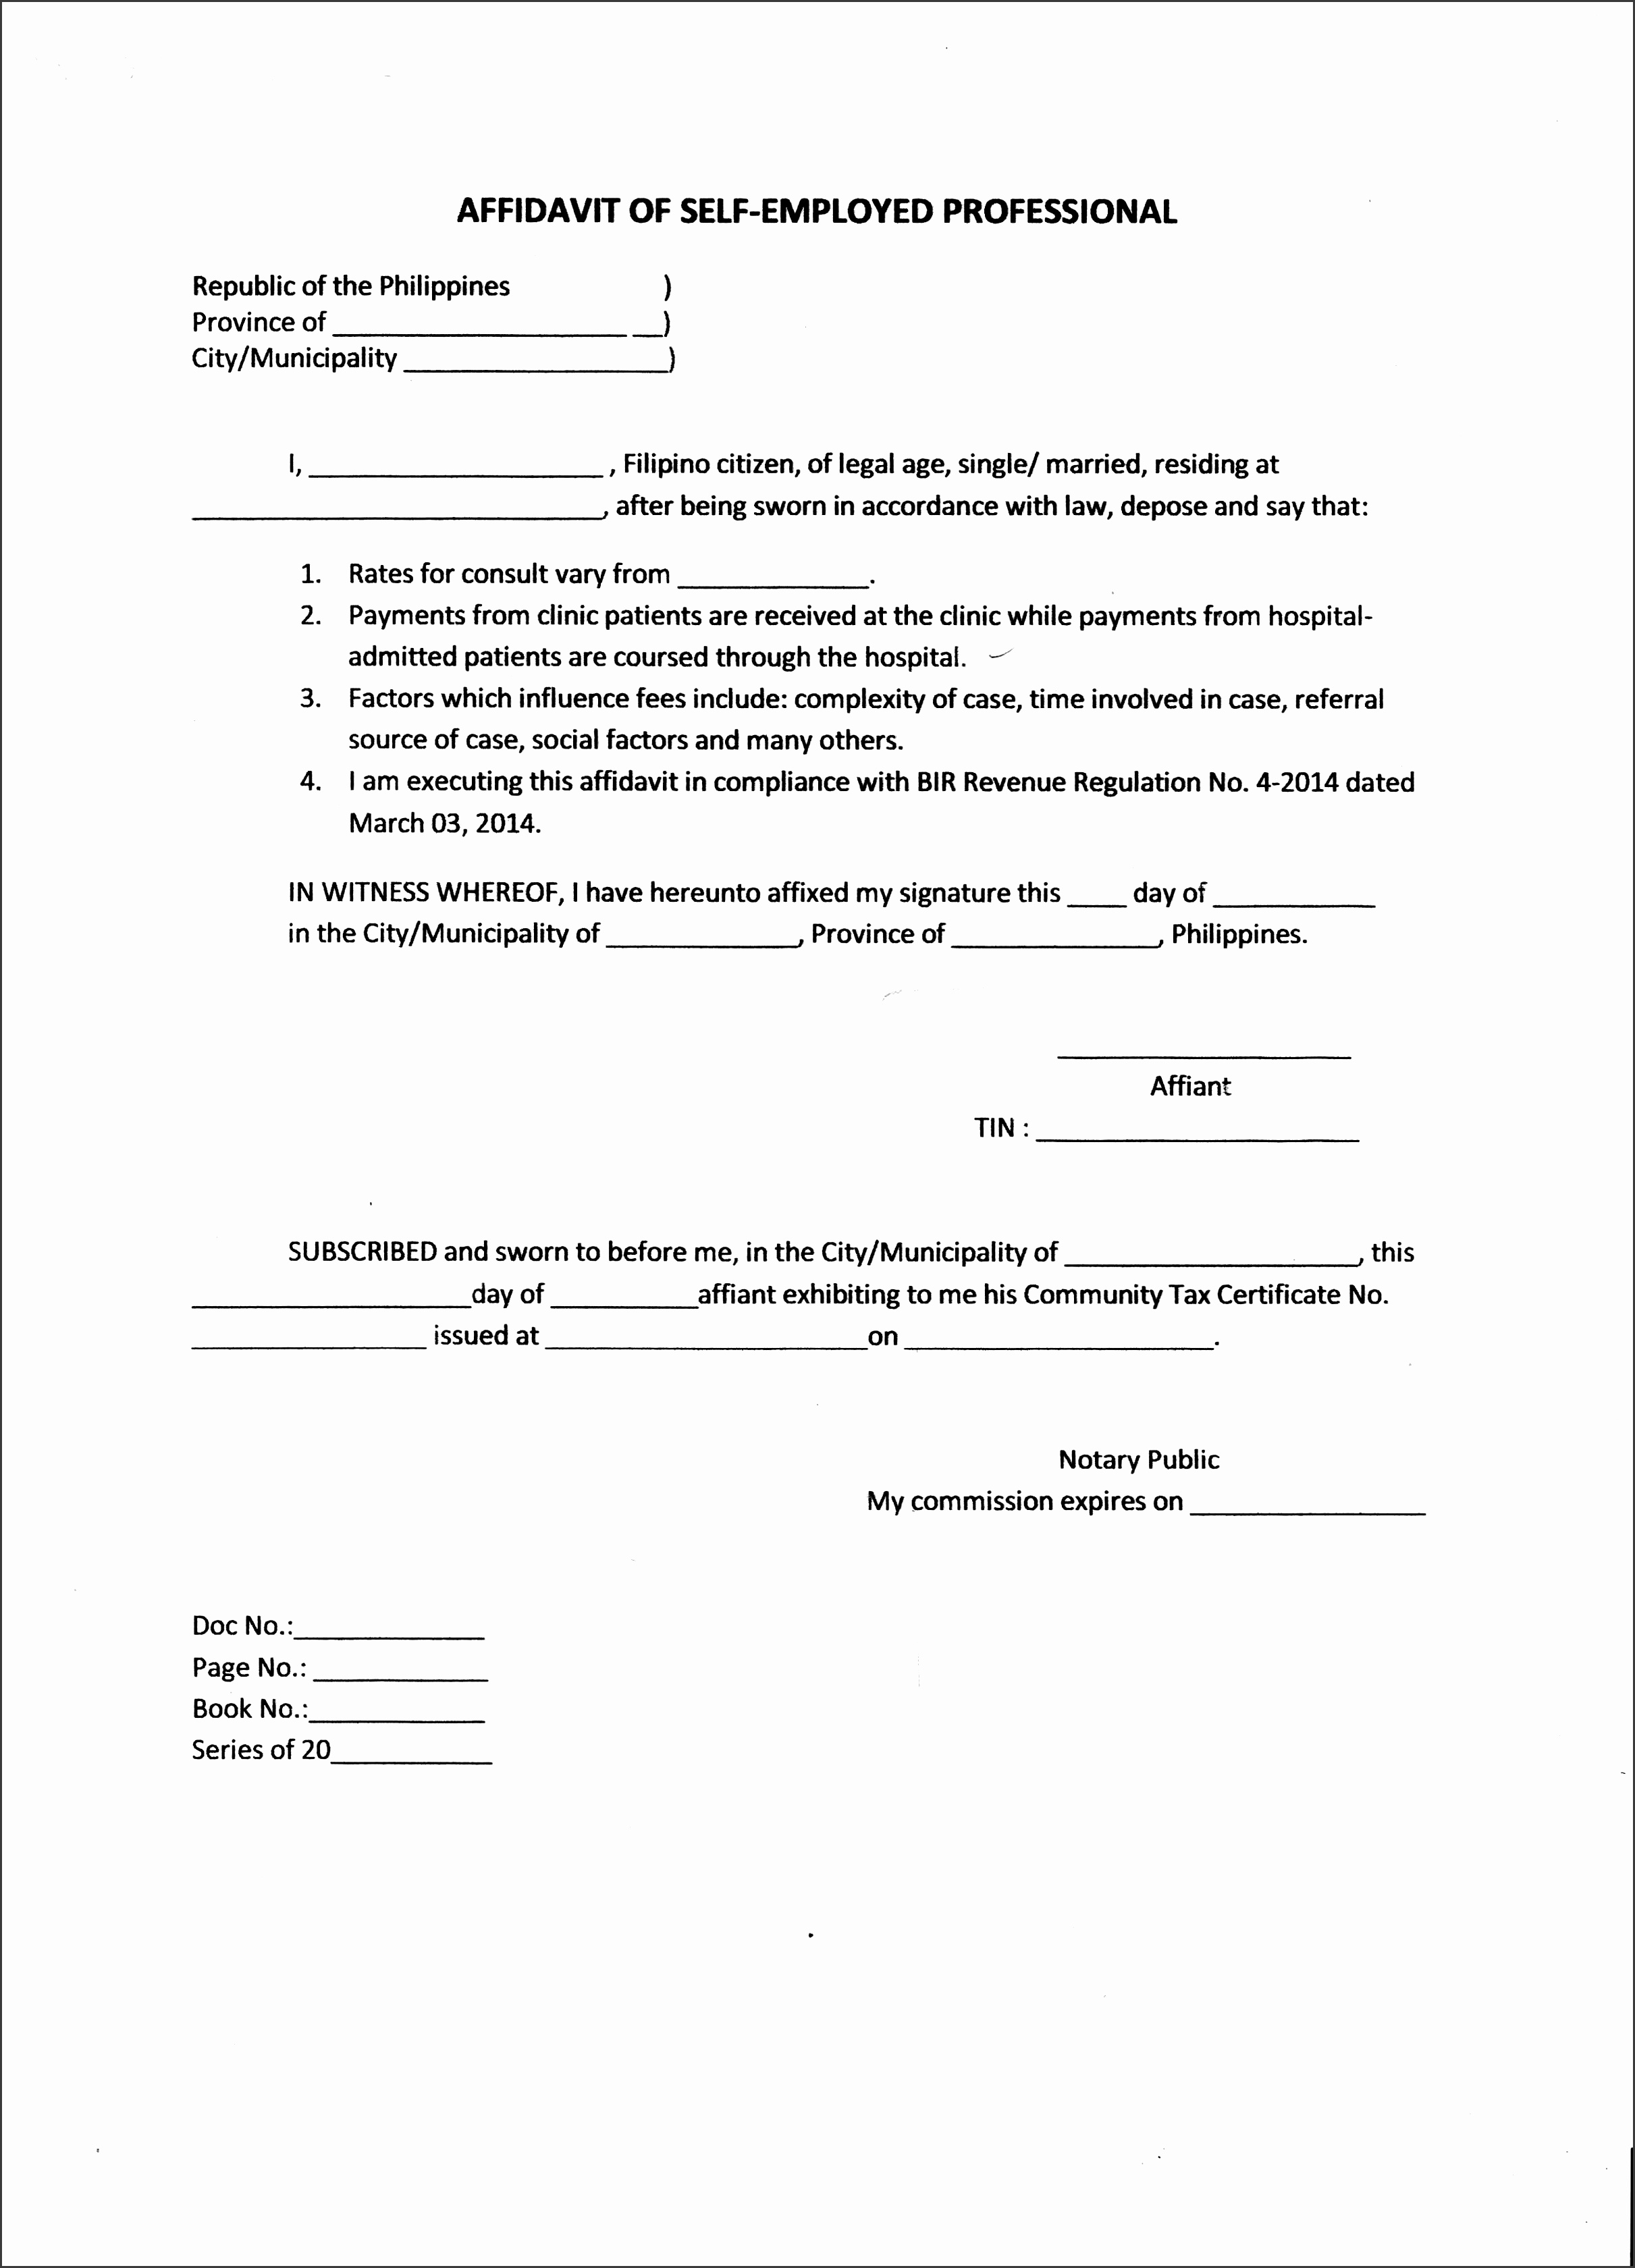 Brilliant Affidavit Of Self Employed Professional Sample With Sworn And  Declaration And Blank Space A Part  Affidavit Form Sample